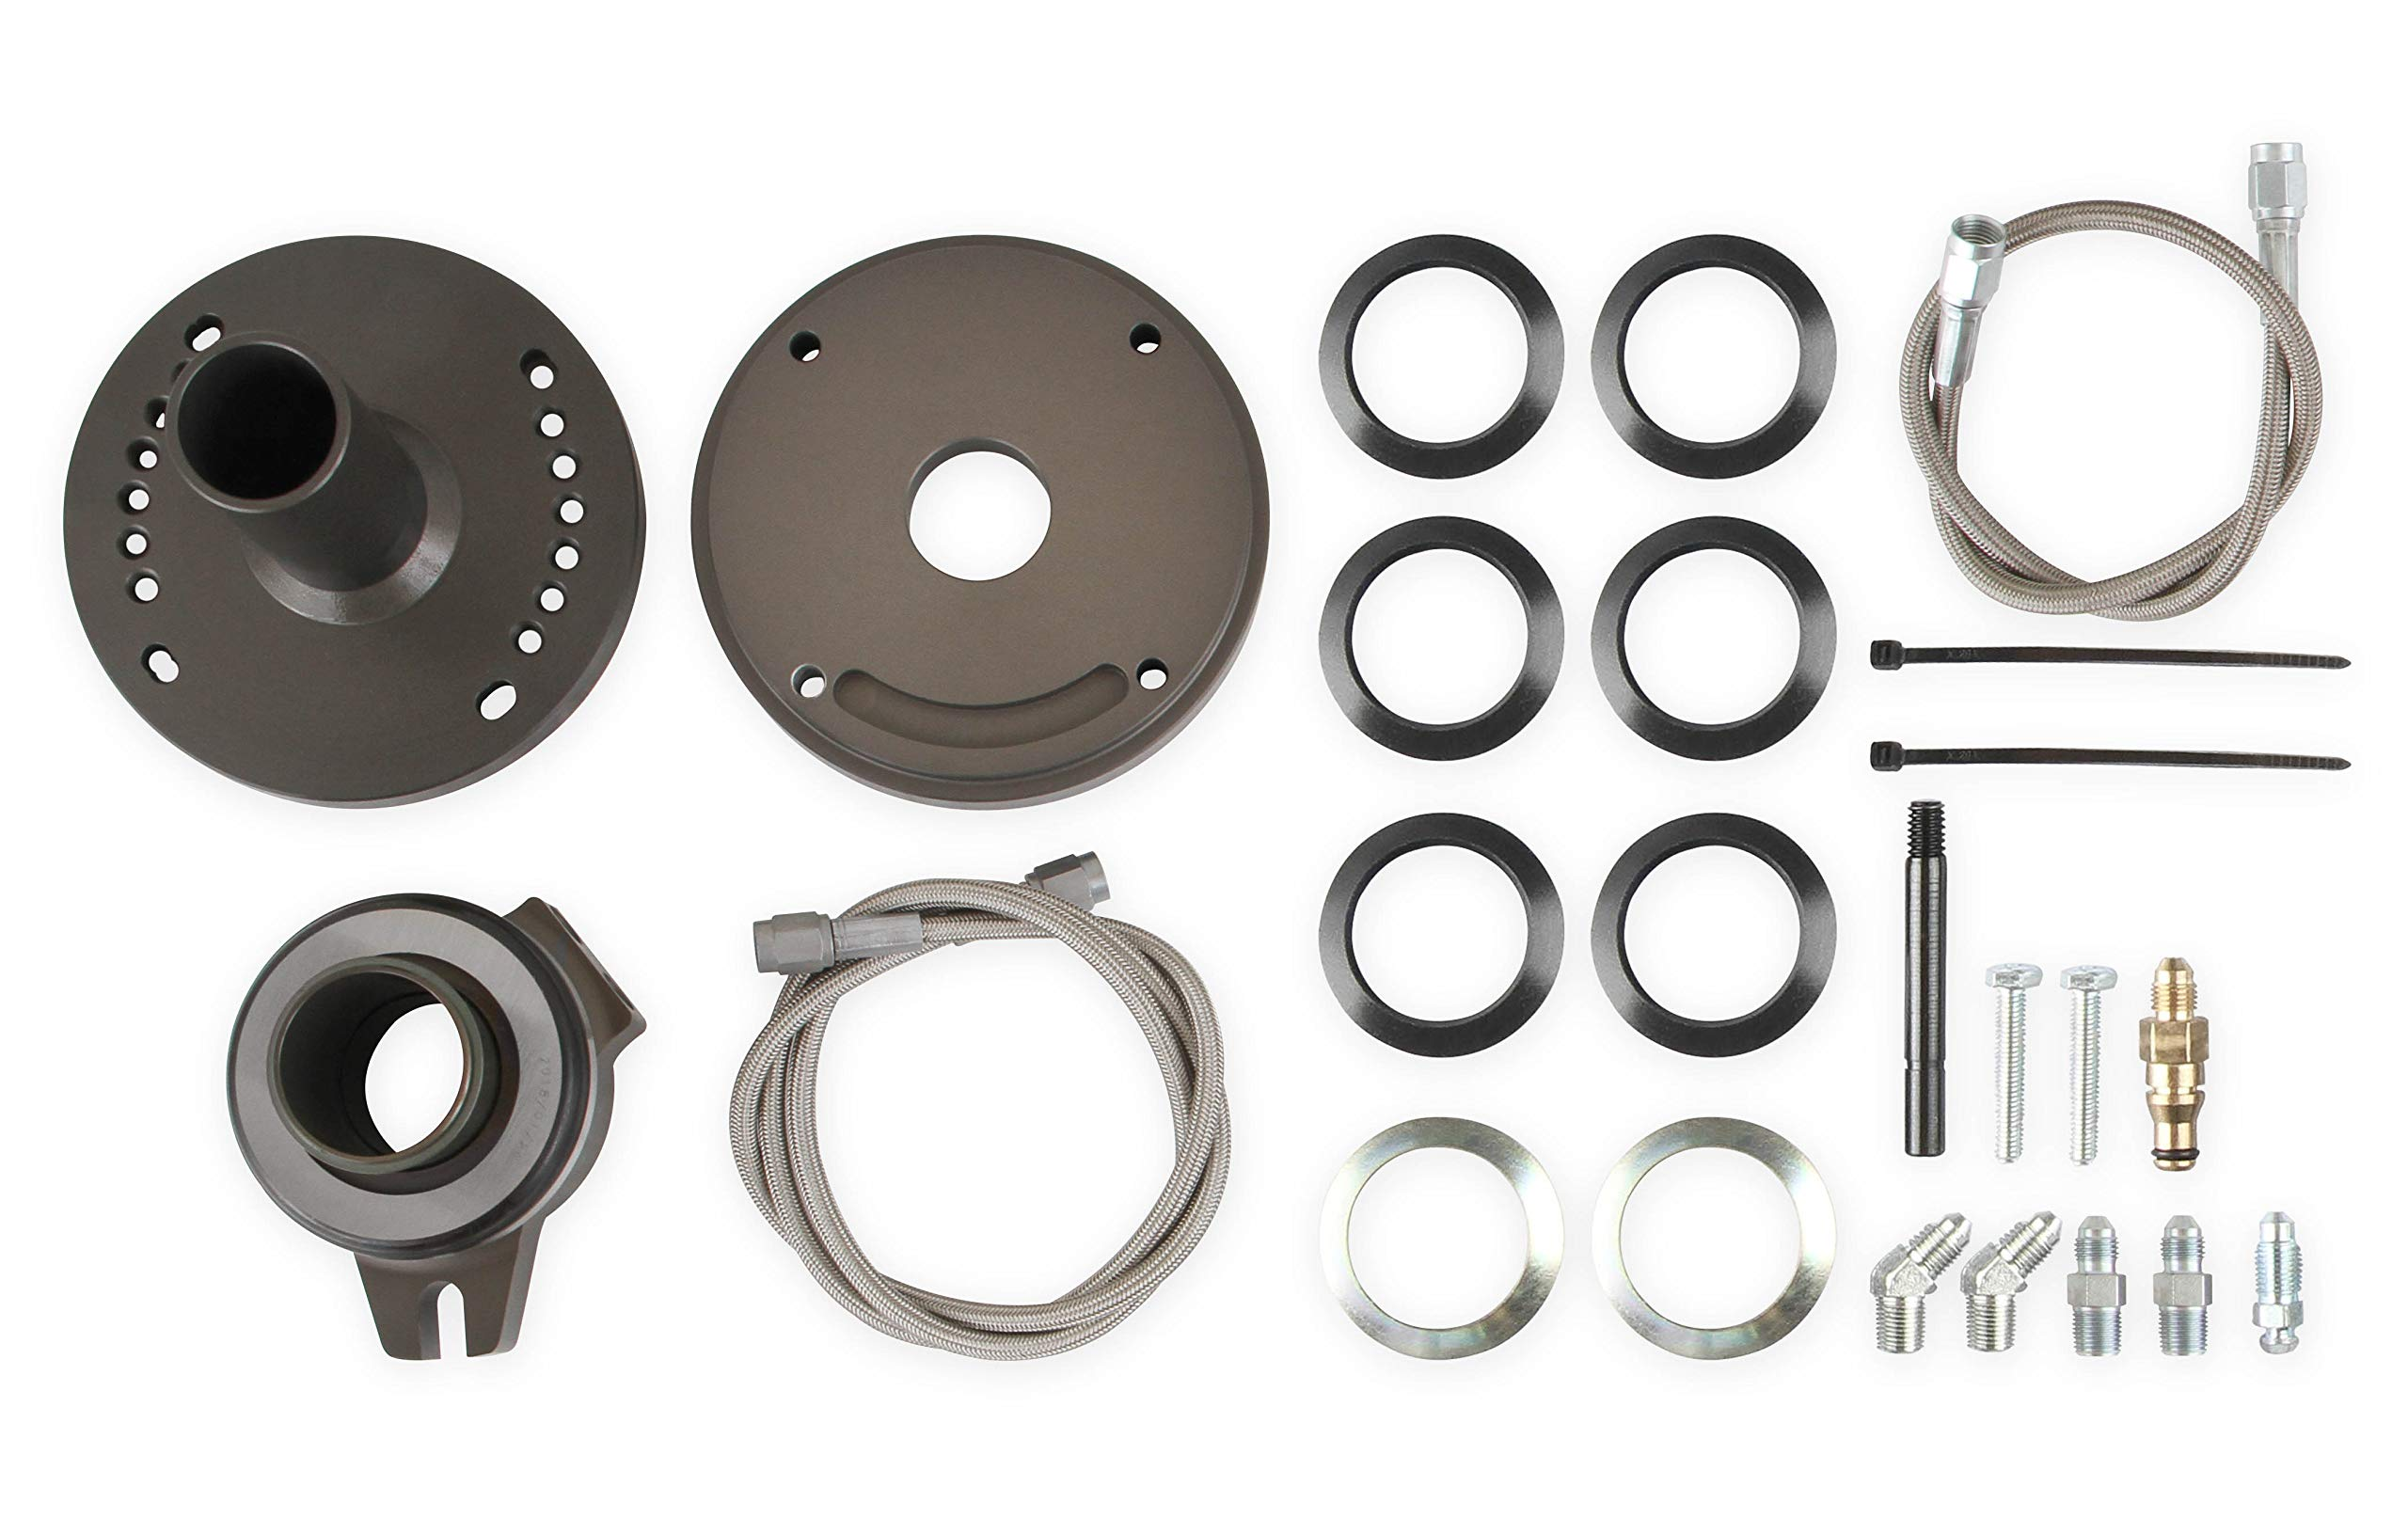 Hays 82-107 Hydraulic Release Bearing Kit for Ford Mustang GT/GT500